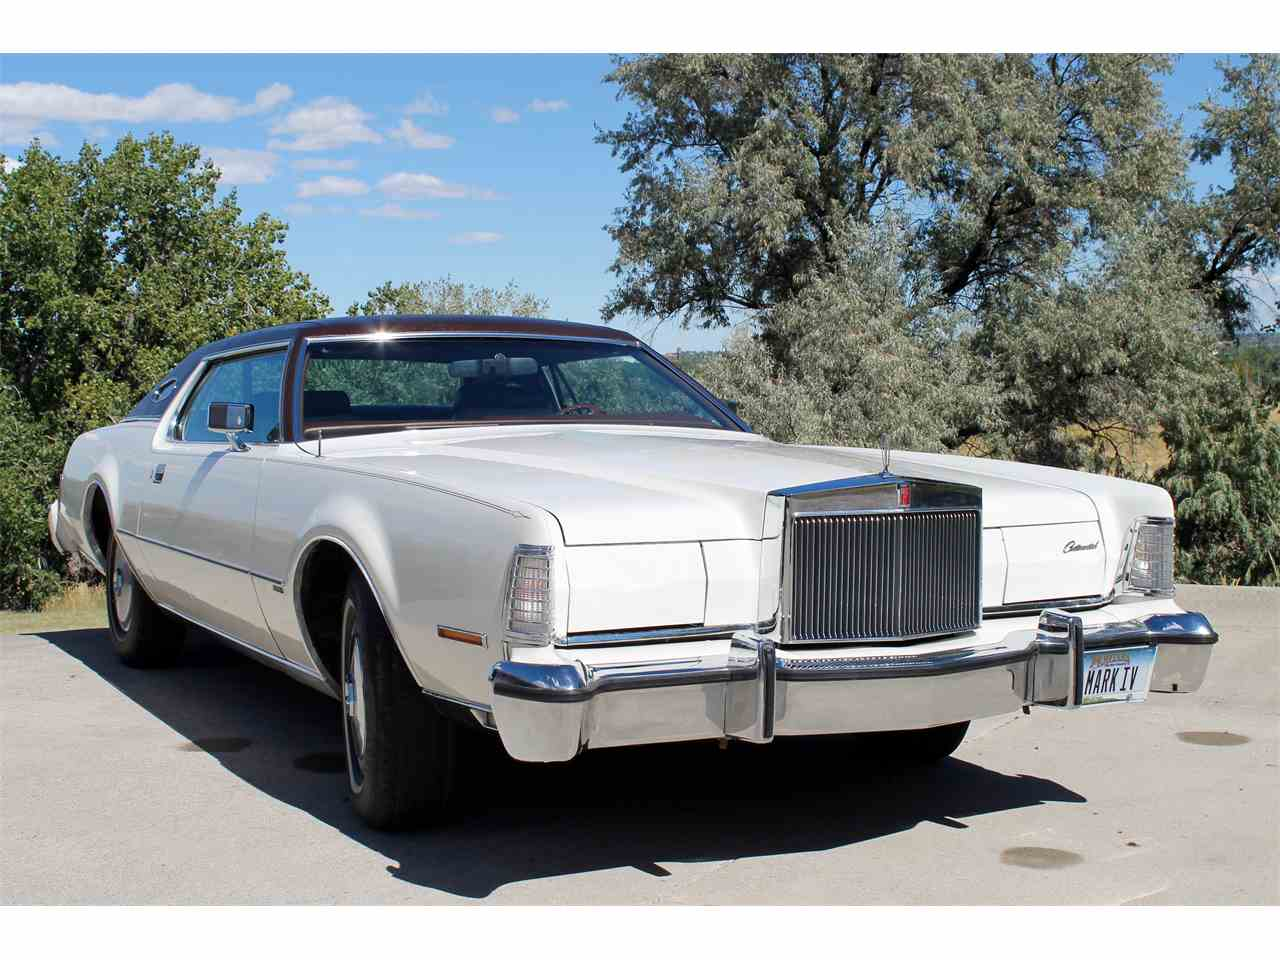 Large Picture of '74 Lincoln Continental Mark IV located in Great Falls Montana - $18,000.00 - LSRB